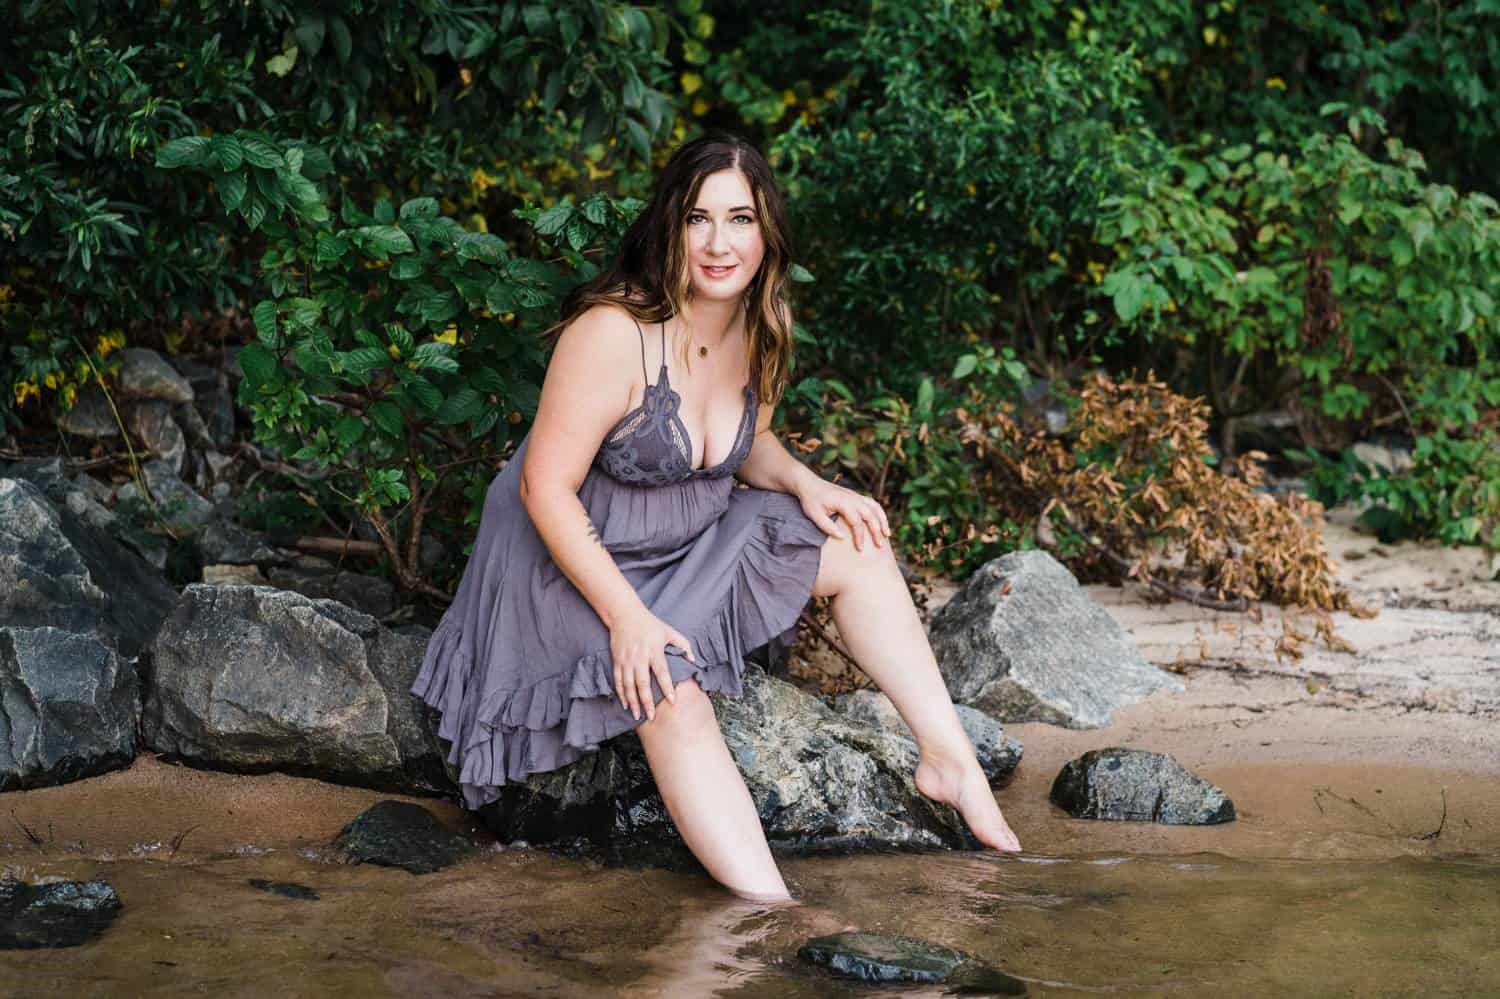 A woman in a short purple nightie sits at the edge of a creek with her feet in the water